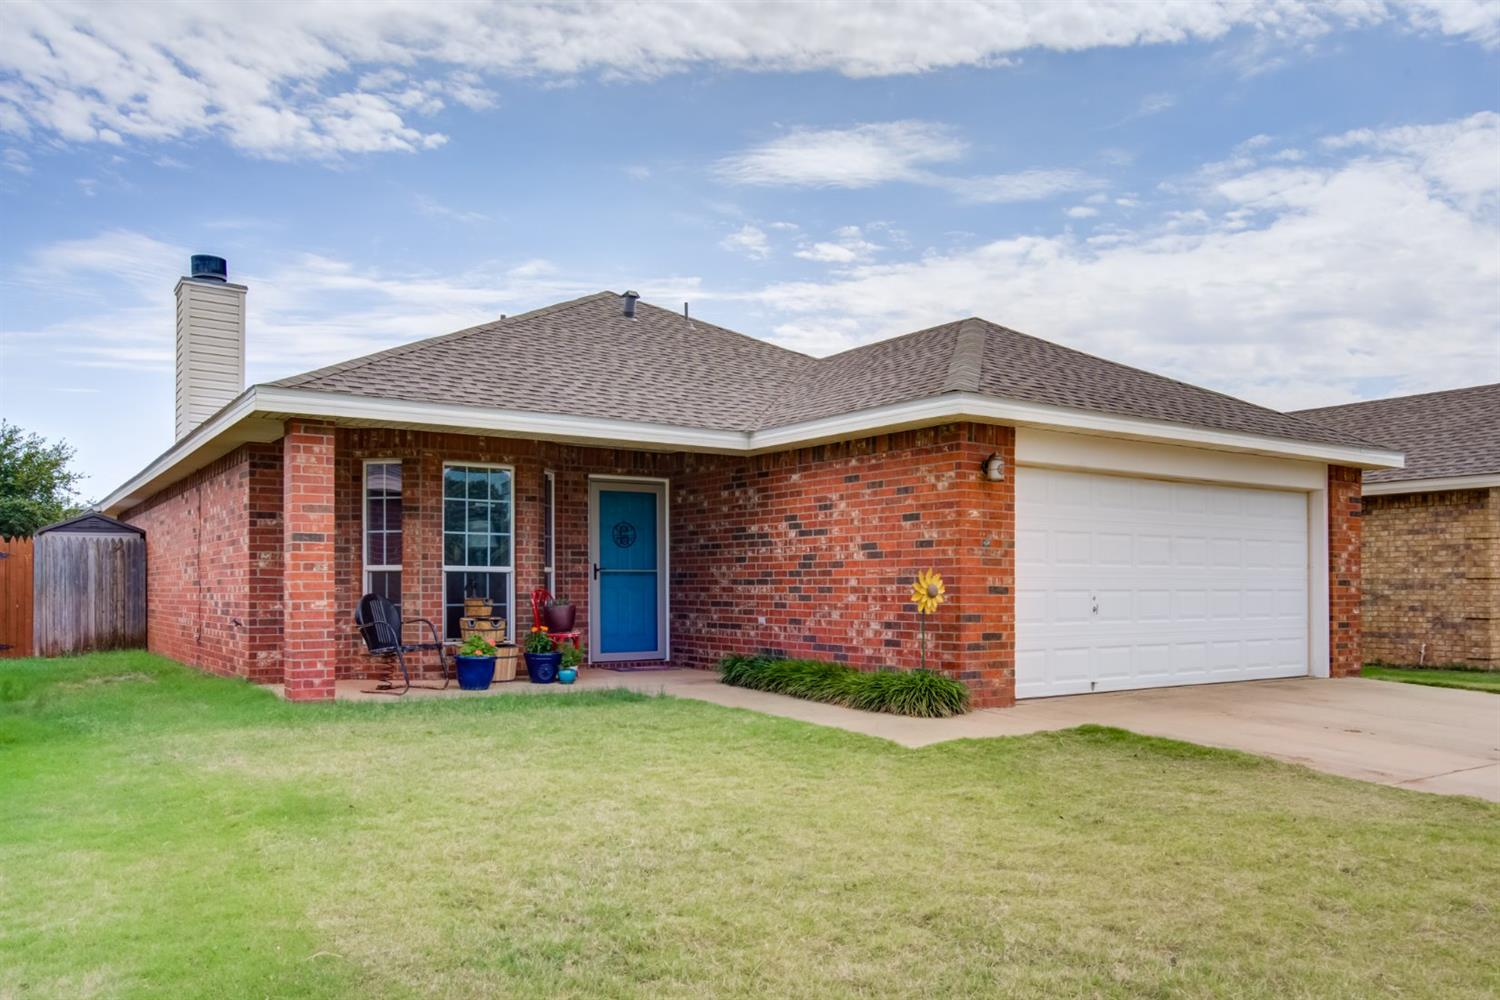 6507 86th Street, Lubbock in Lubbock County, TX 79424 Home for Sale